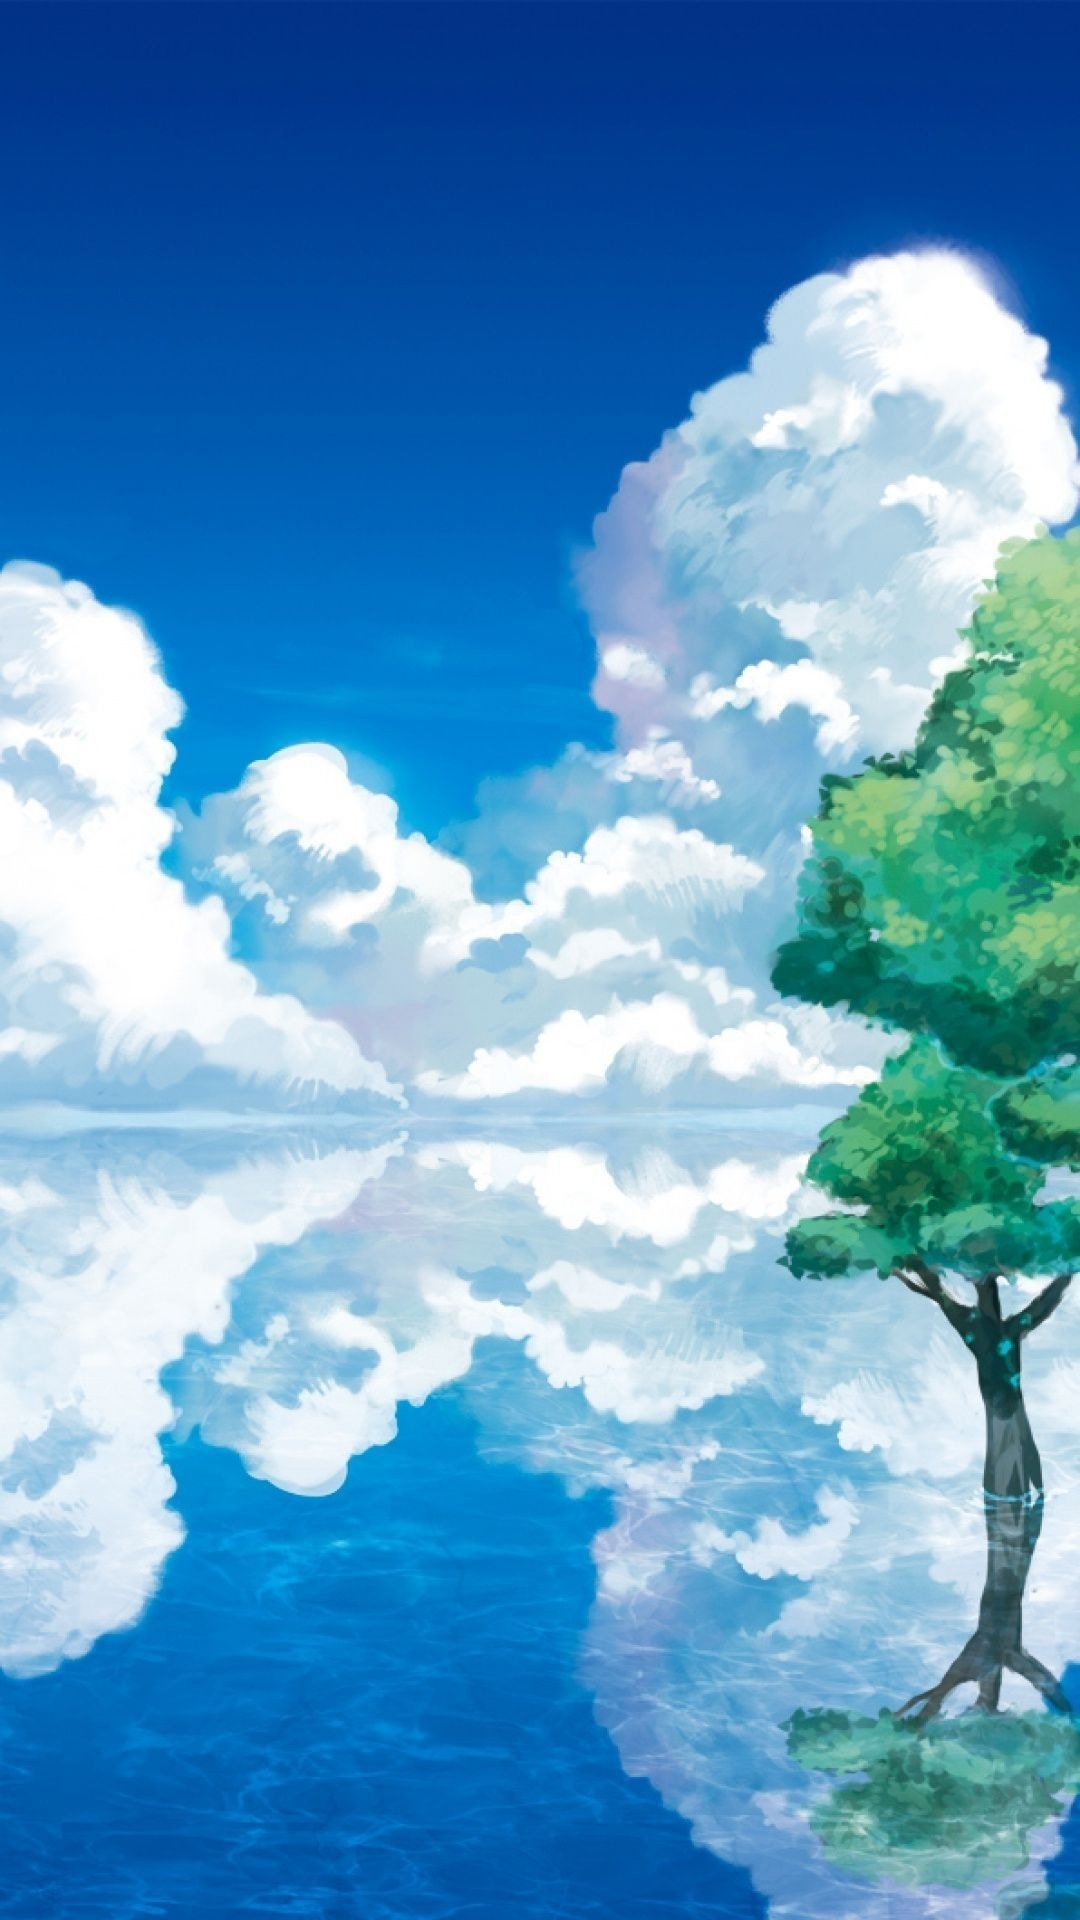 Anime landscape phone wallpapers top free anime - Anime phone wallpaper hd ...